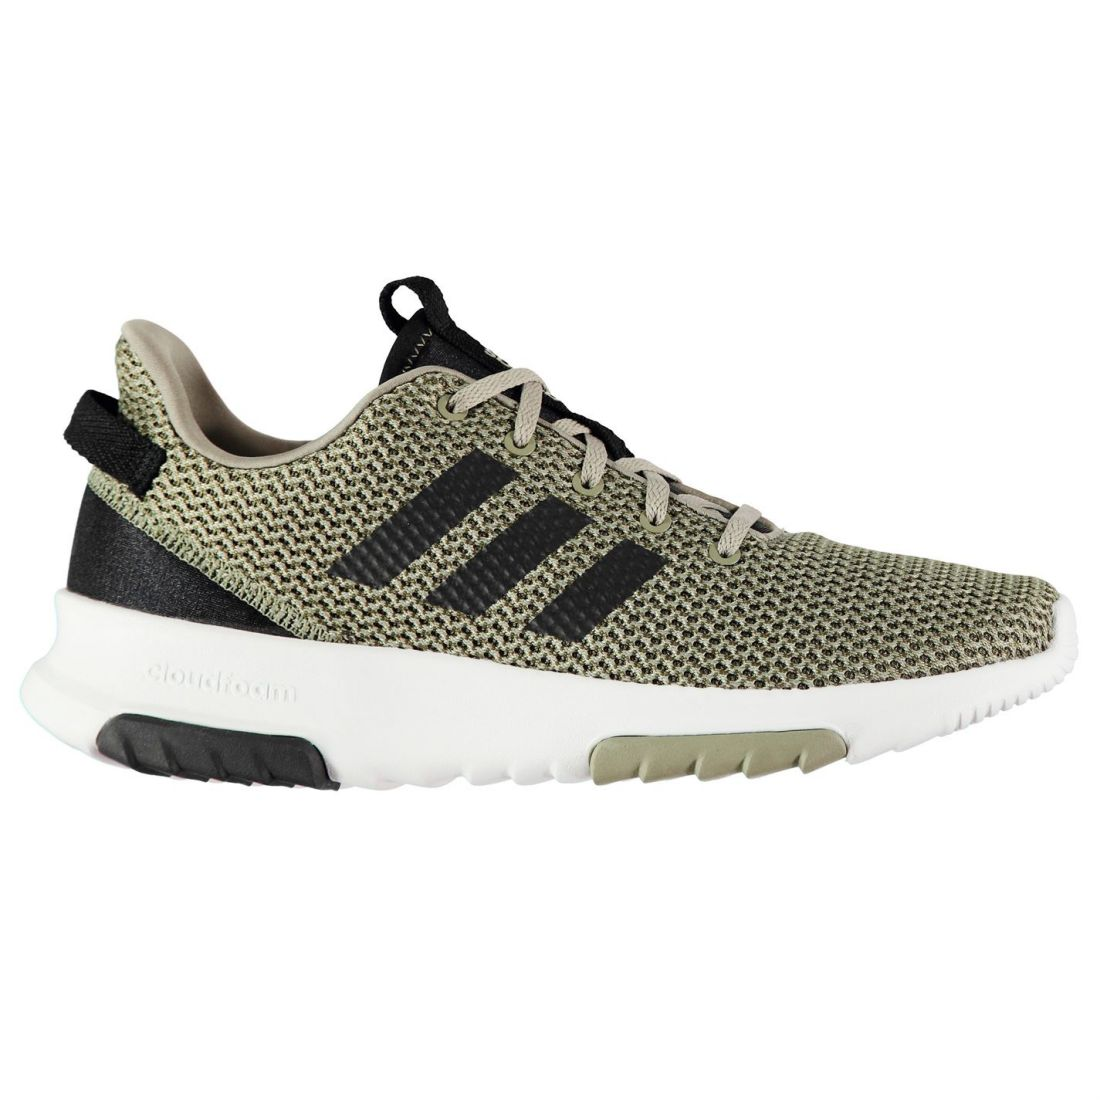 adidas Mens CloudFoam Racer TR Trainers Runners Lace Up Breathable ... ada60ec8e